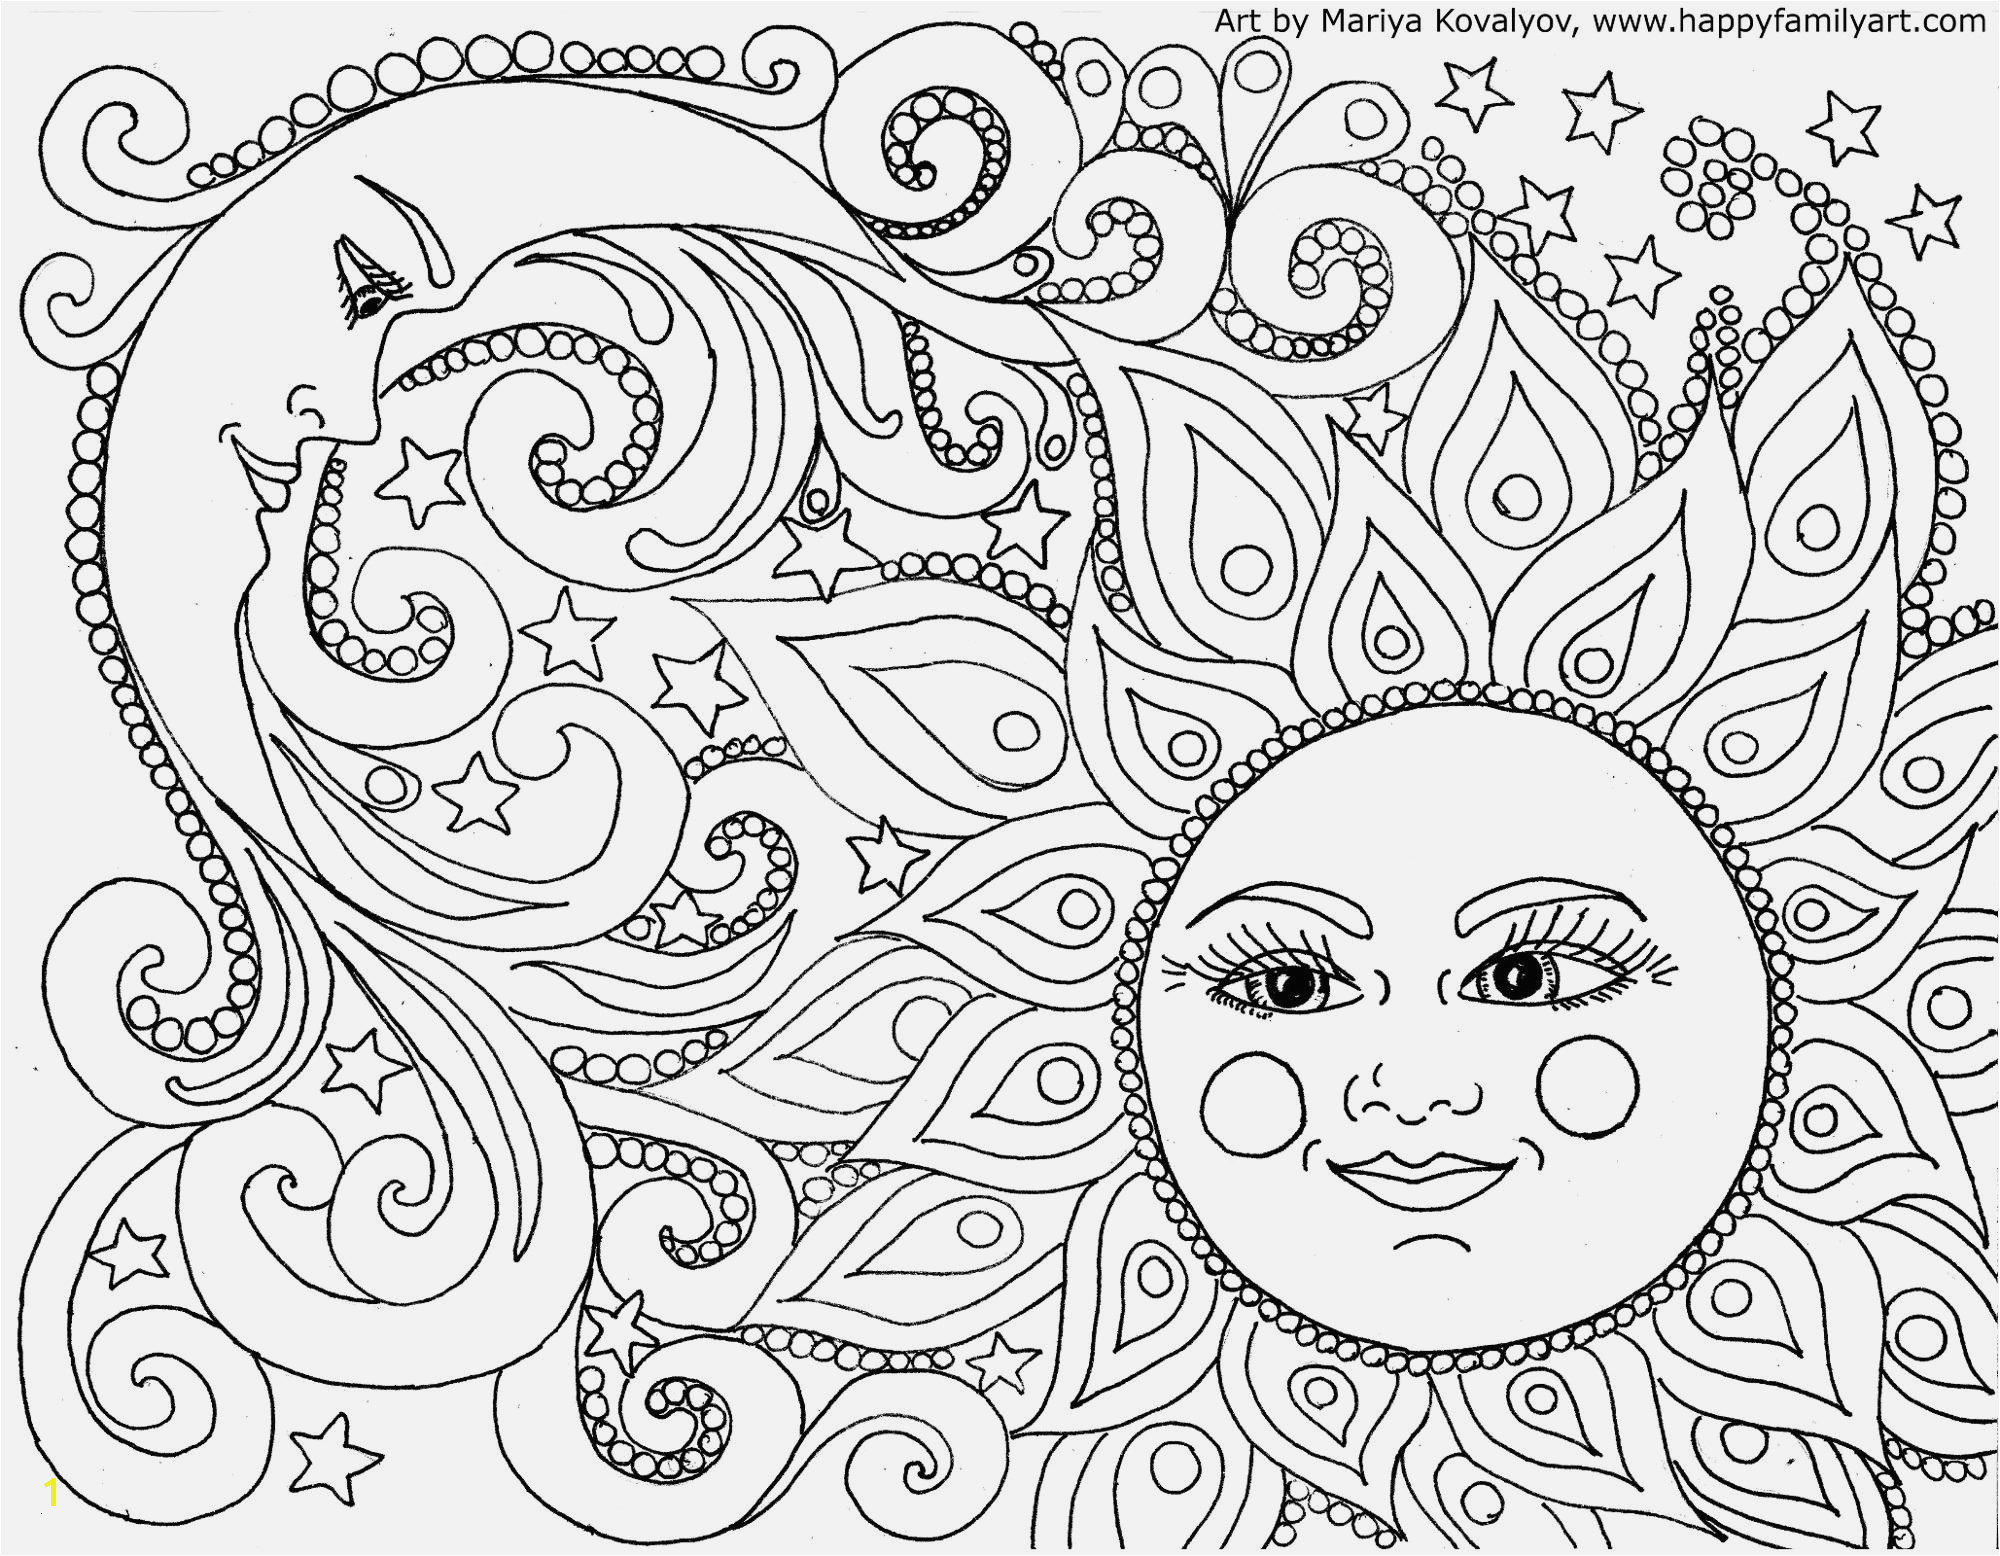 Coloring Pages for Adults to Print Funny Coloring Pages for Adults Easy and Fun Witch Coloring Page